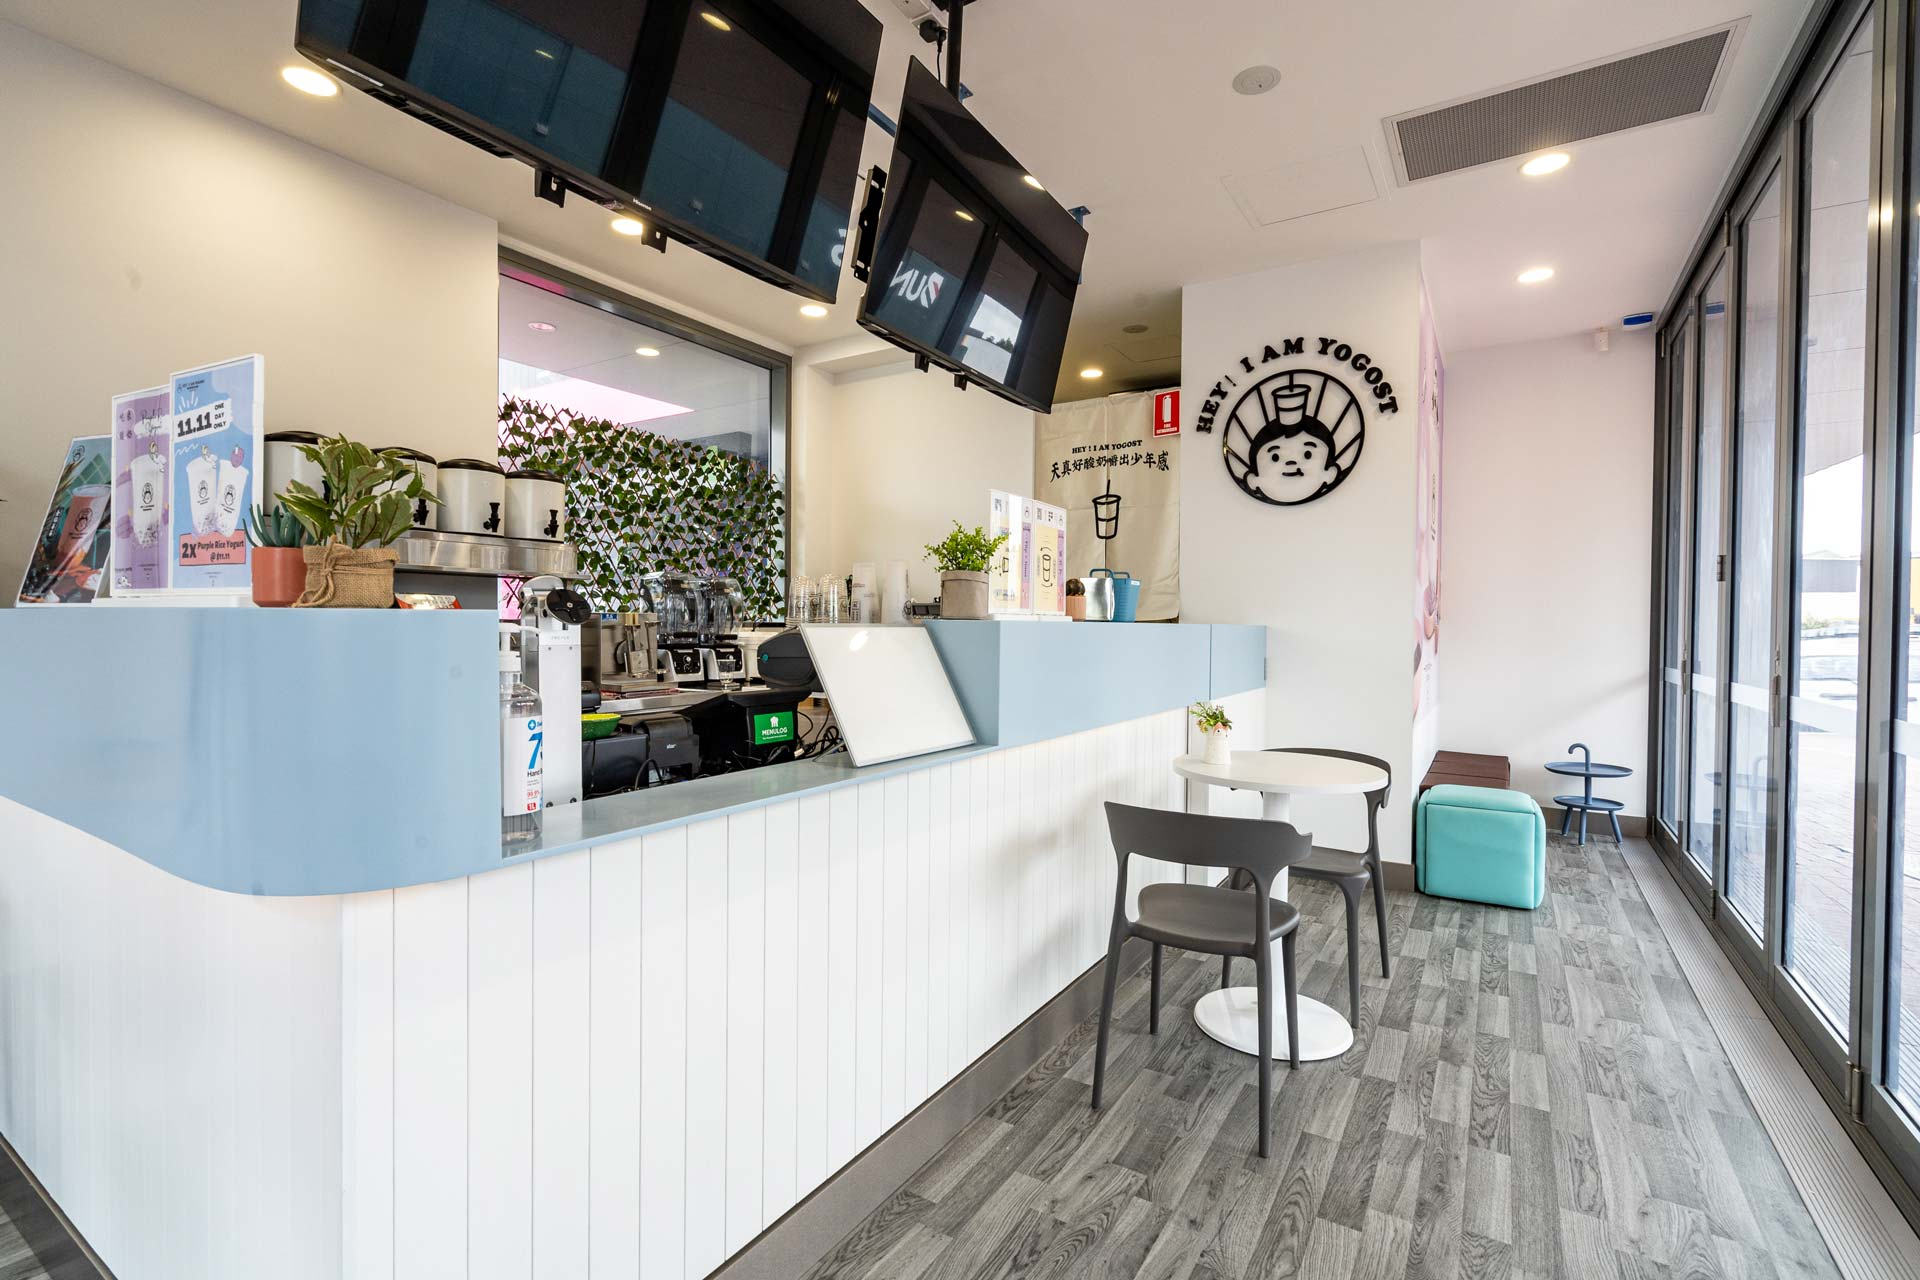 Yogost cafe with LED menu screens and a large counter area